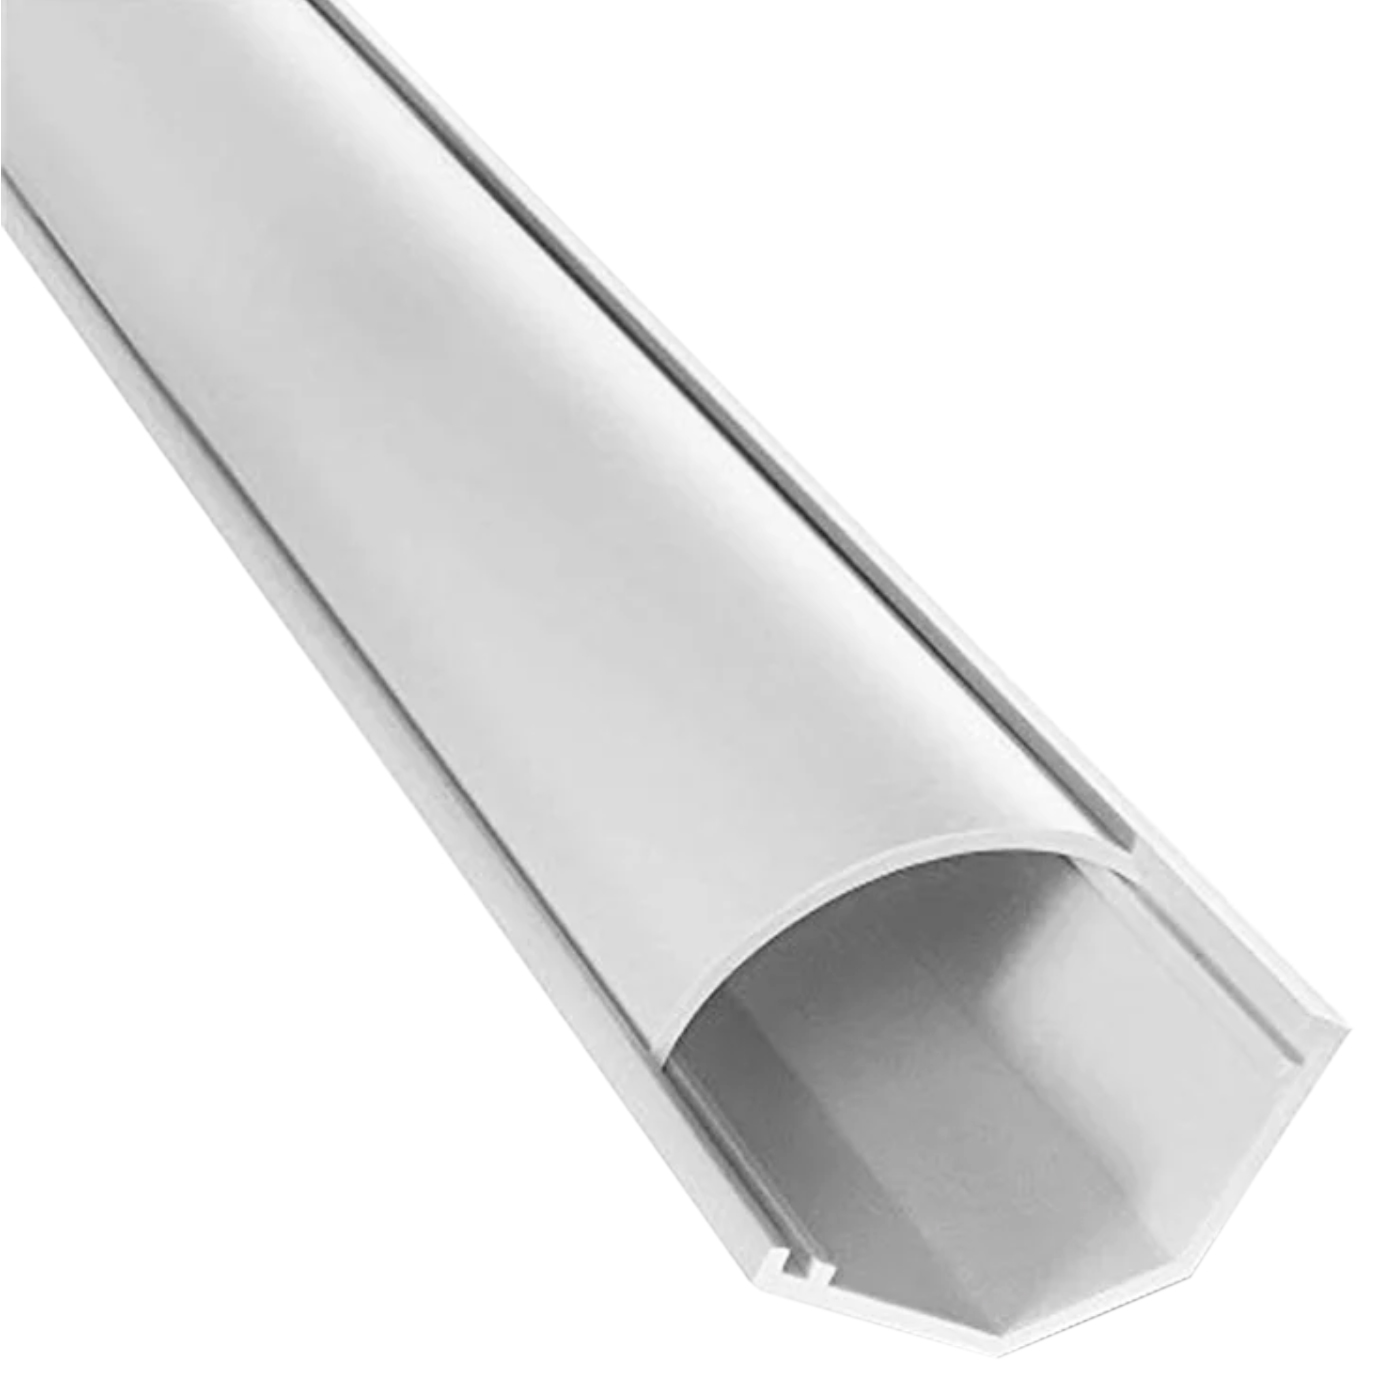 front view of 1150 series cornerduct surface raceway